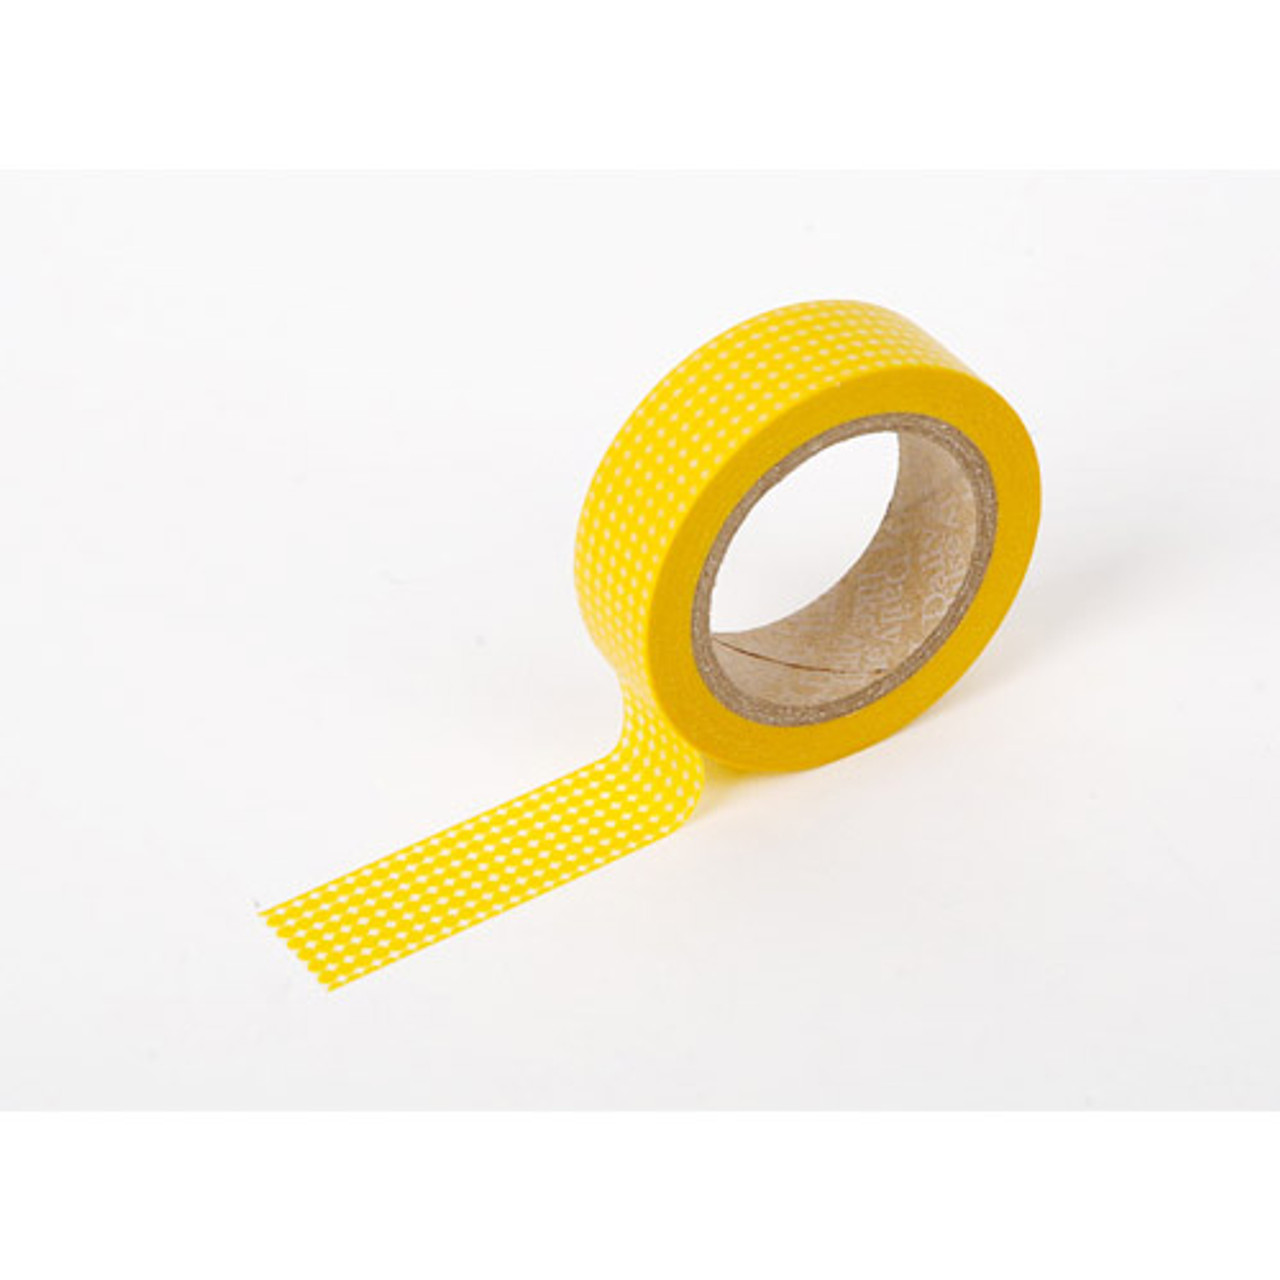 dailylike deco masking tape single yellow dot. Black Bedroom Furniture Sets. Home Design Ideas